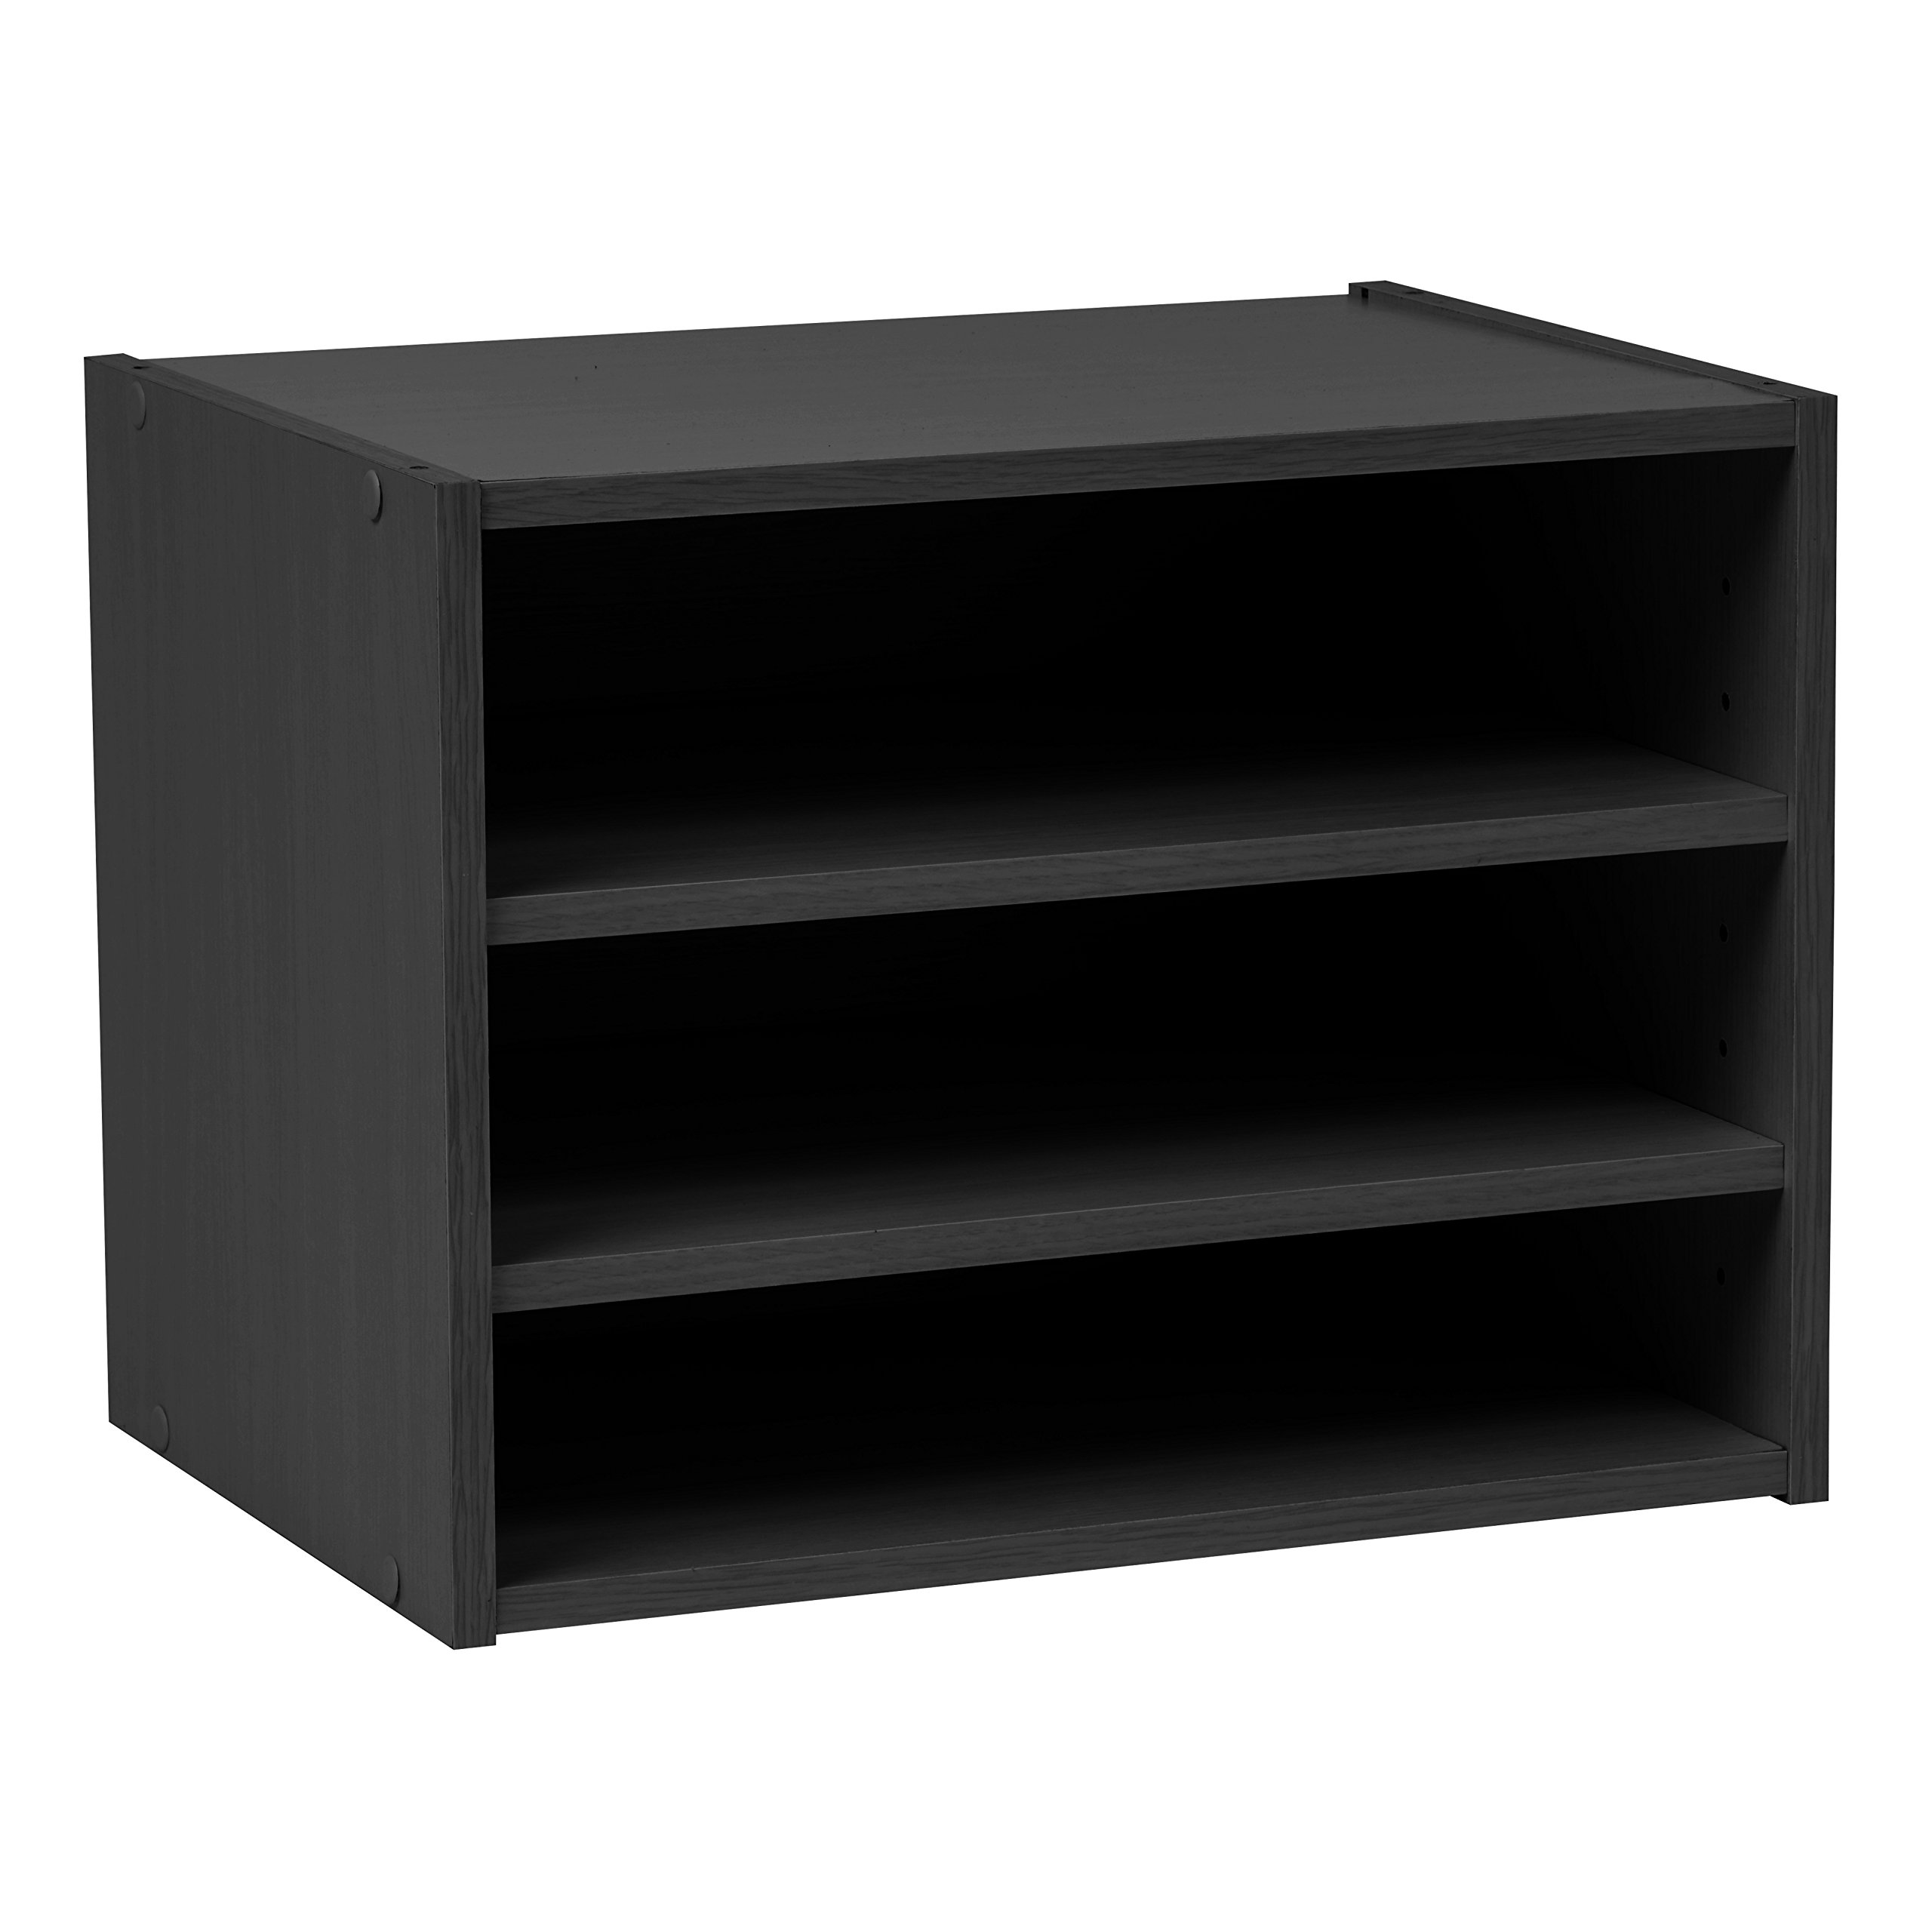 IRIS USA, SBS BLACK, Modular Wood Storage Organizer Cube Box with Adjustable Shelves, Black, 1 Pack by IRIS USA, Inc.